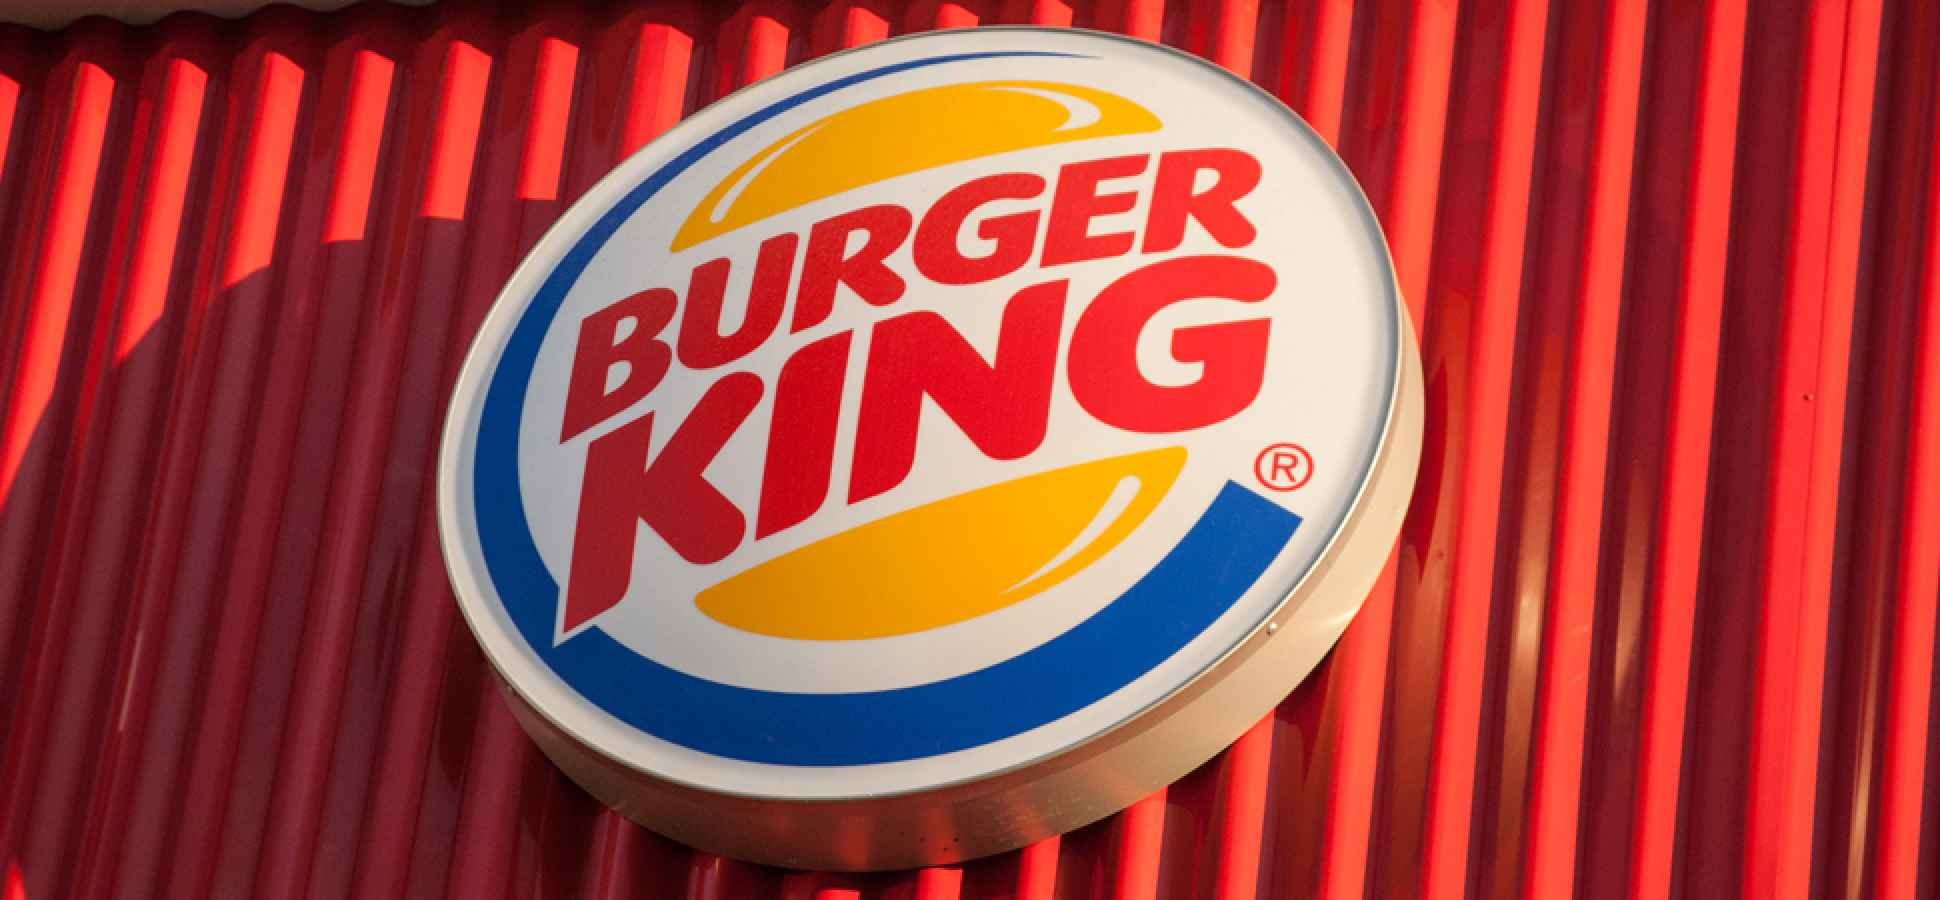 burger king - photo #39